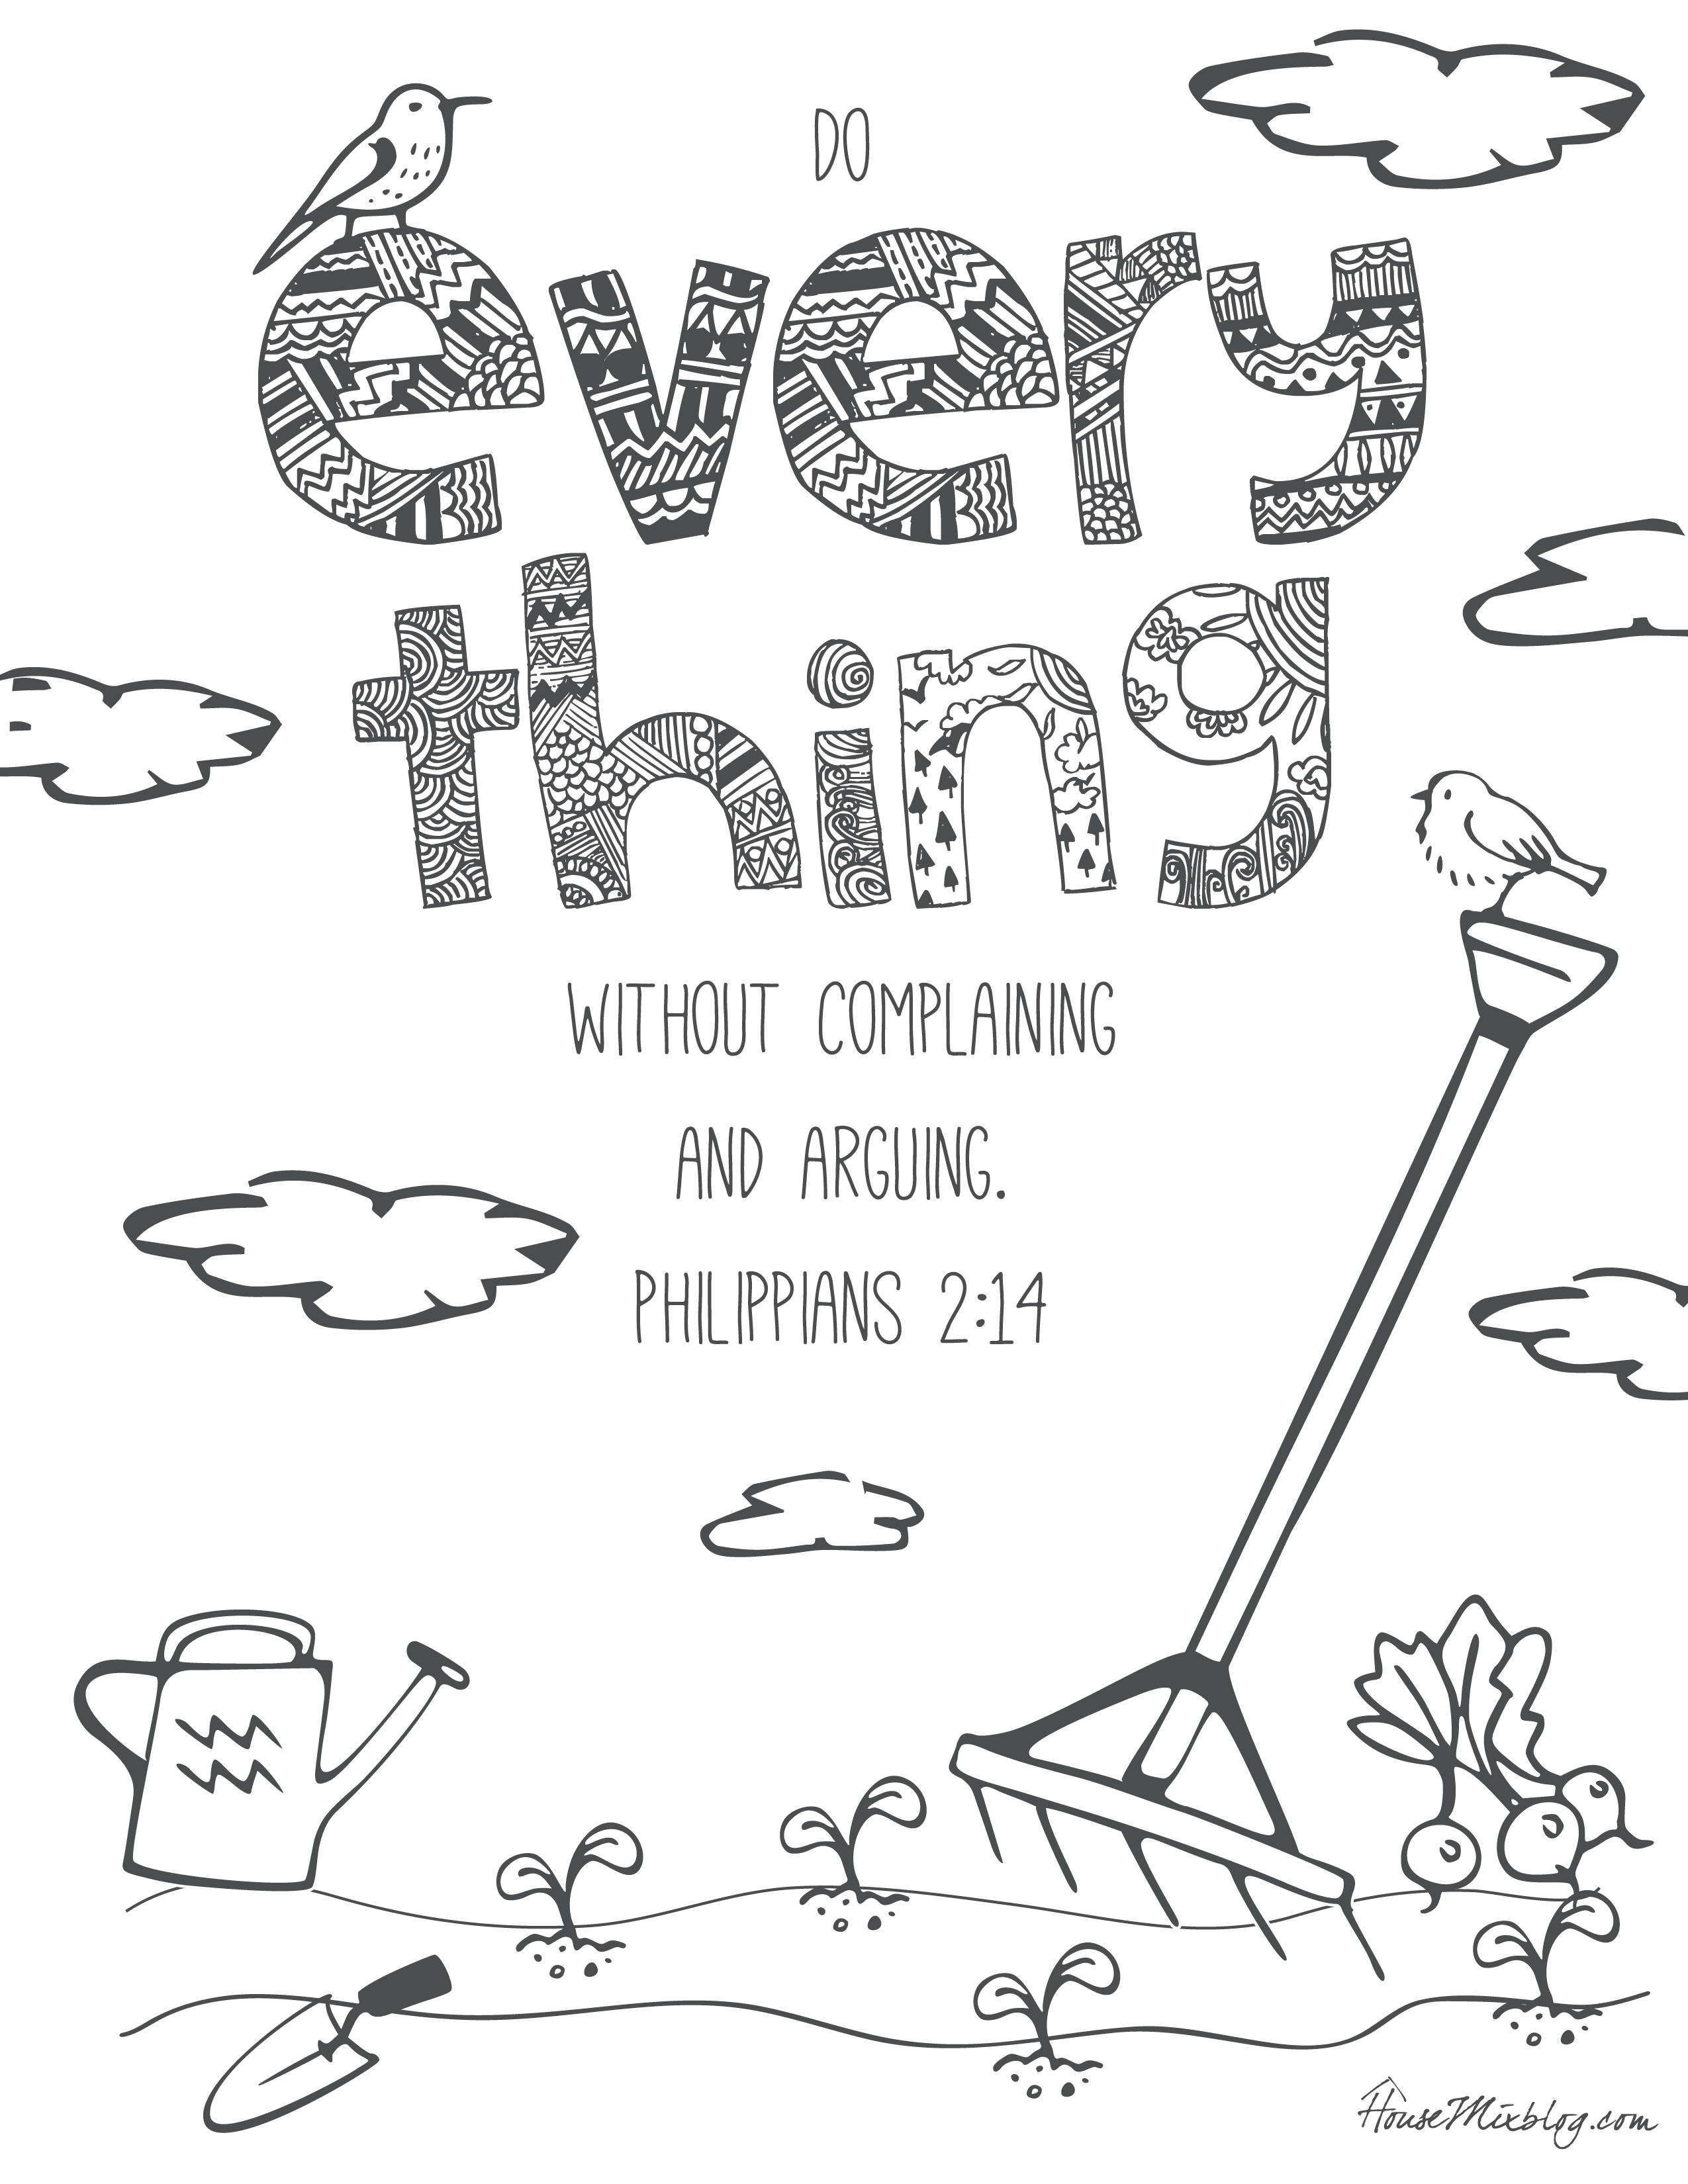 11 Bible verses to teach kids (with printables to color ...